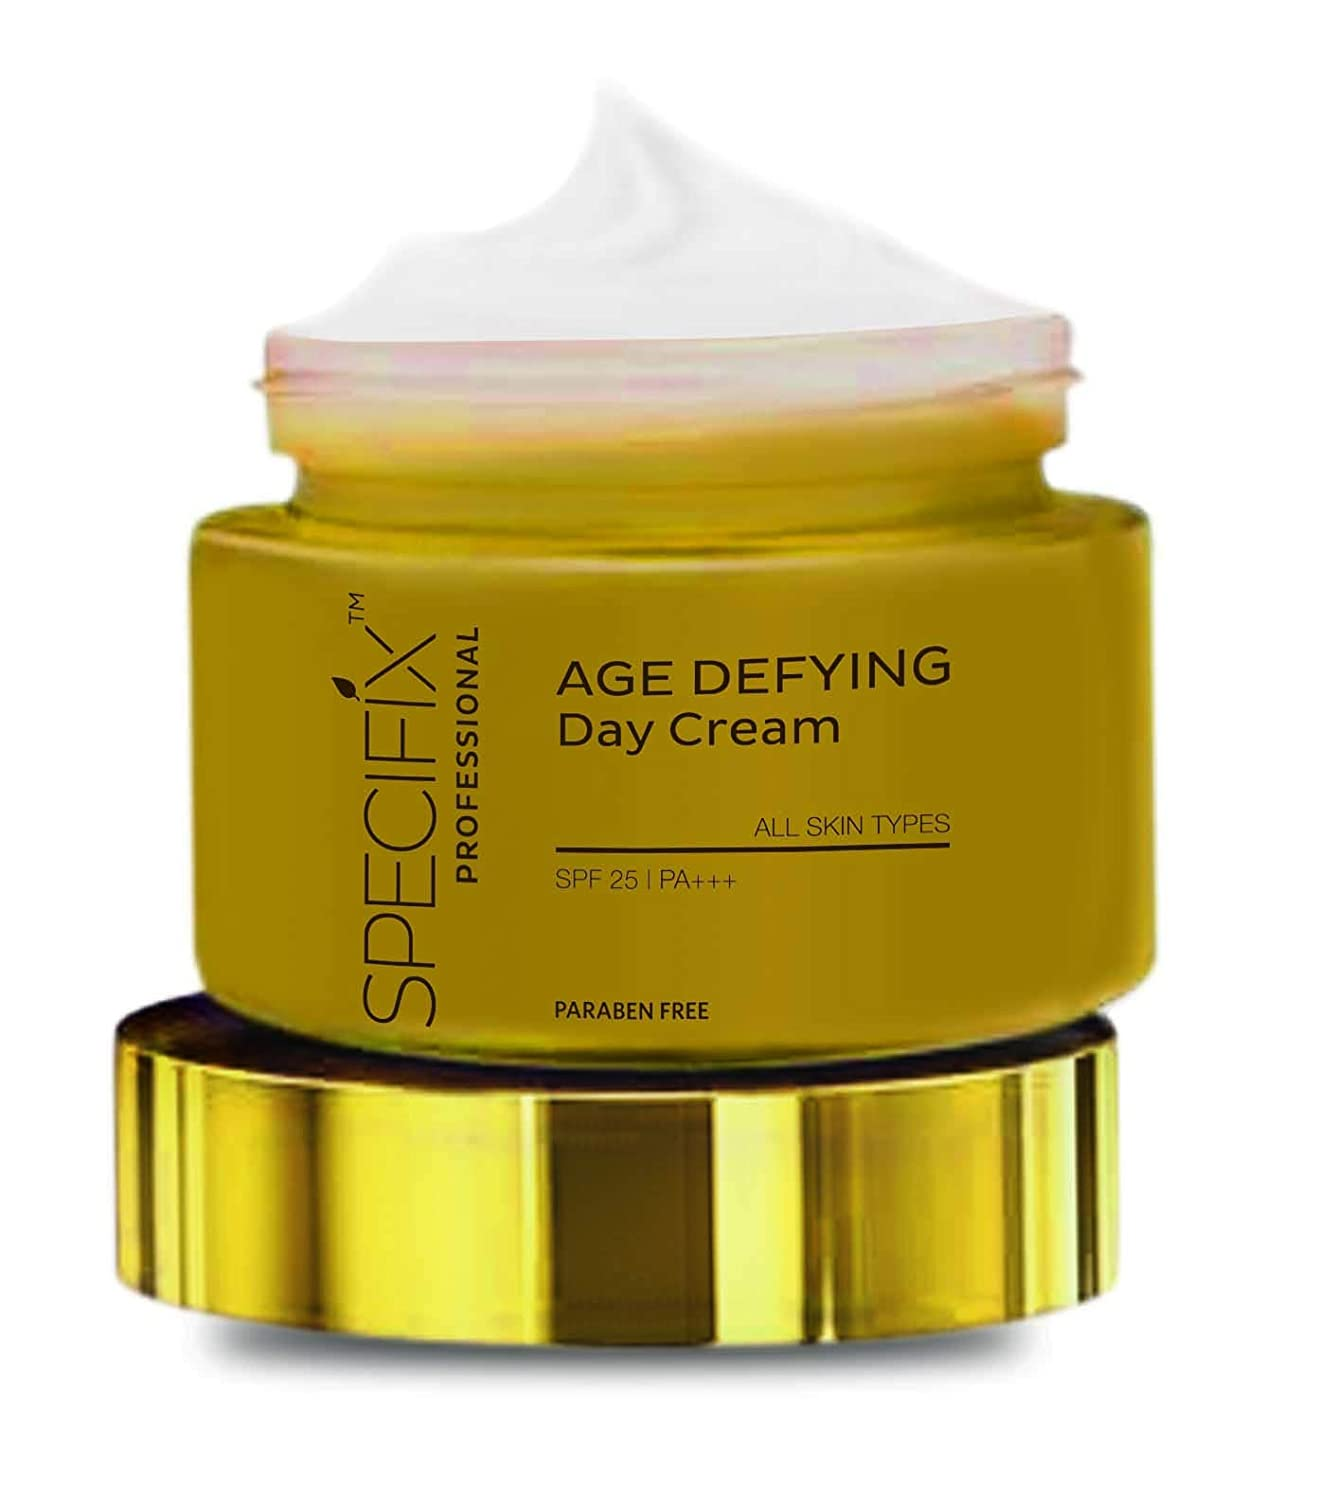 VLCC Specifix Age Defying  Day Cream, 50g